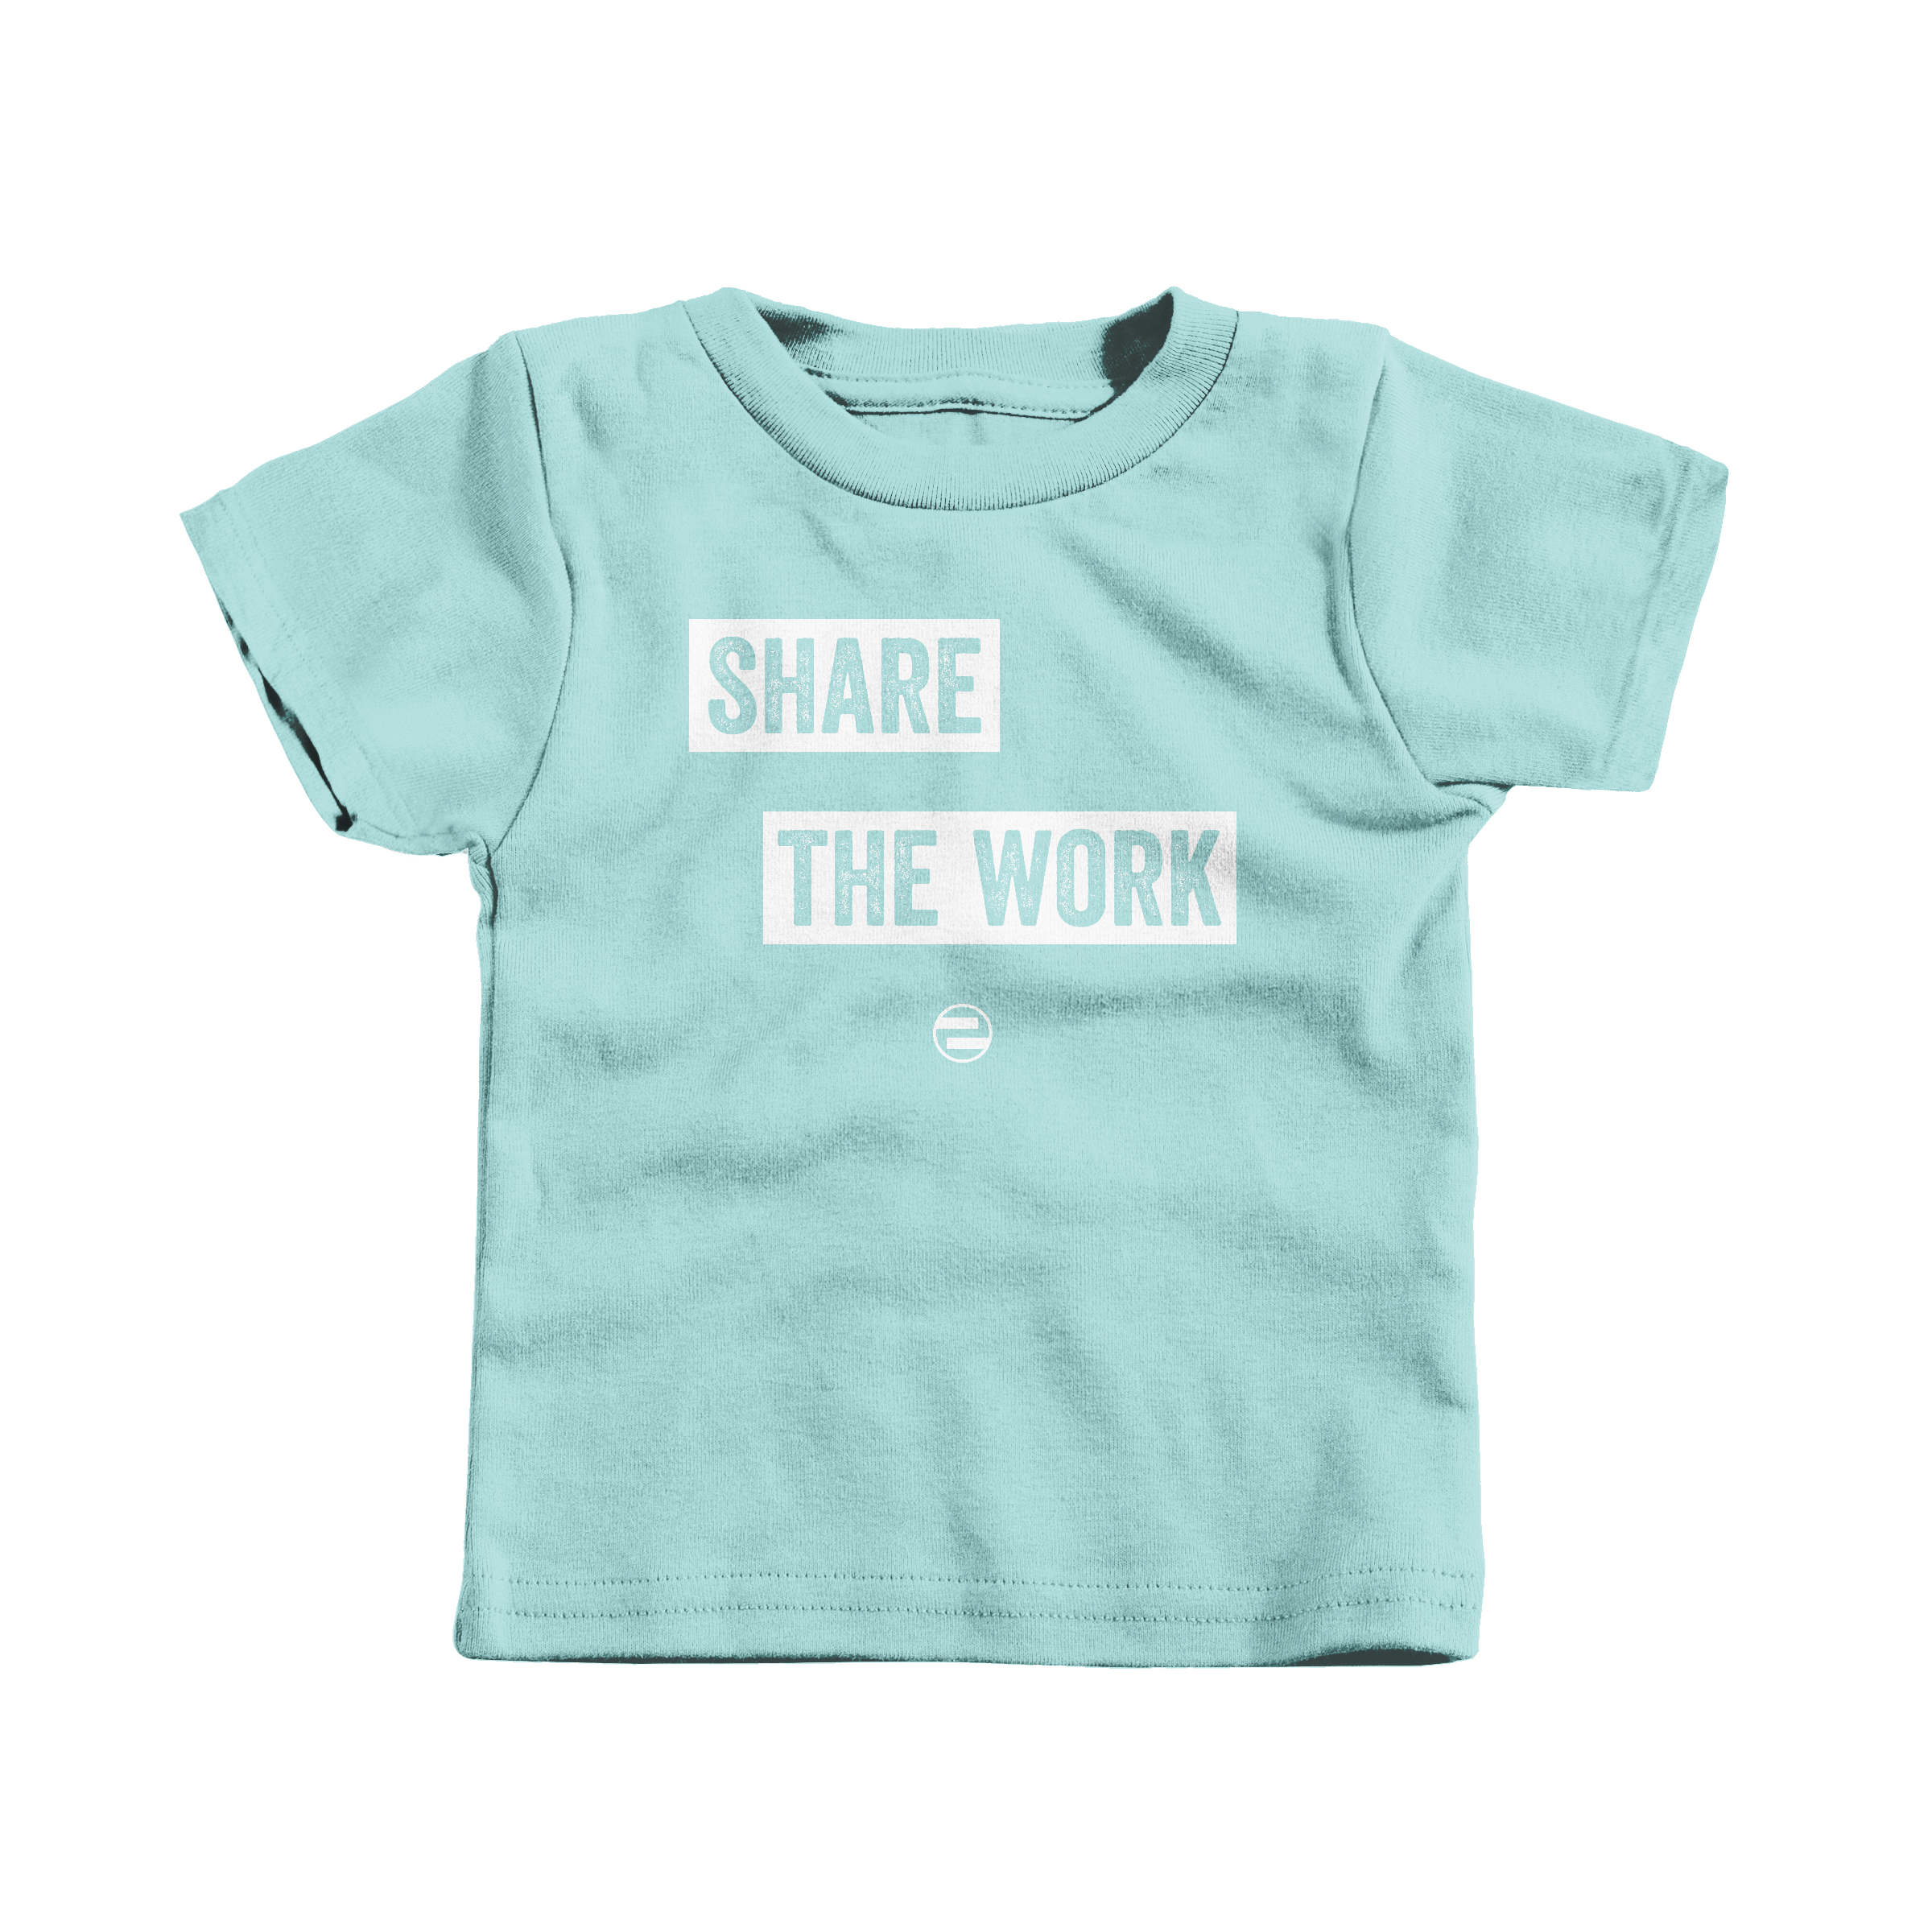 "GenEquality ""Share the Work"" Kids Tee & Onesie Chill (T-Shirt)"